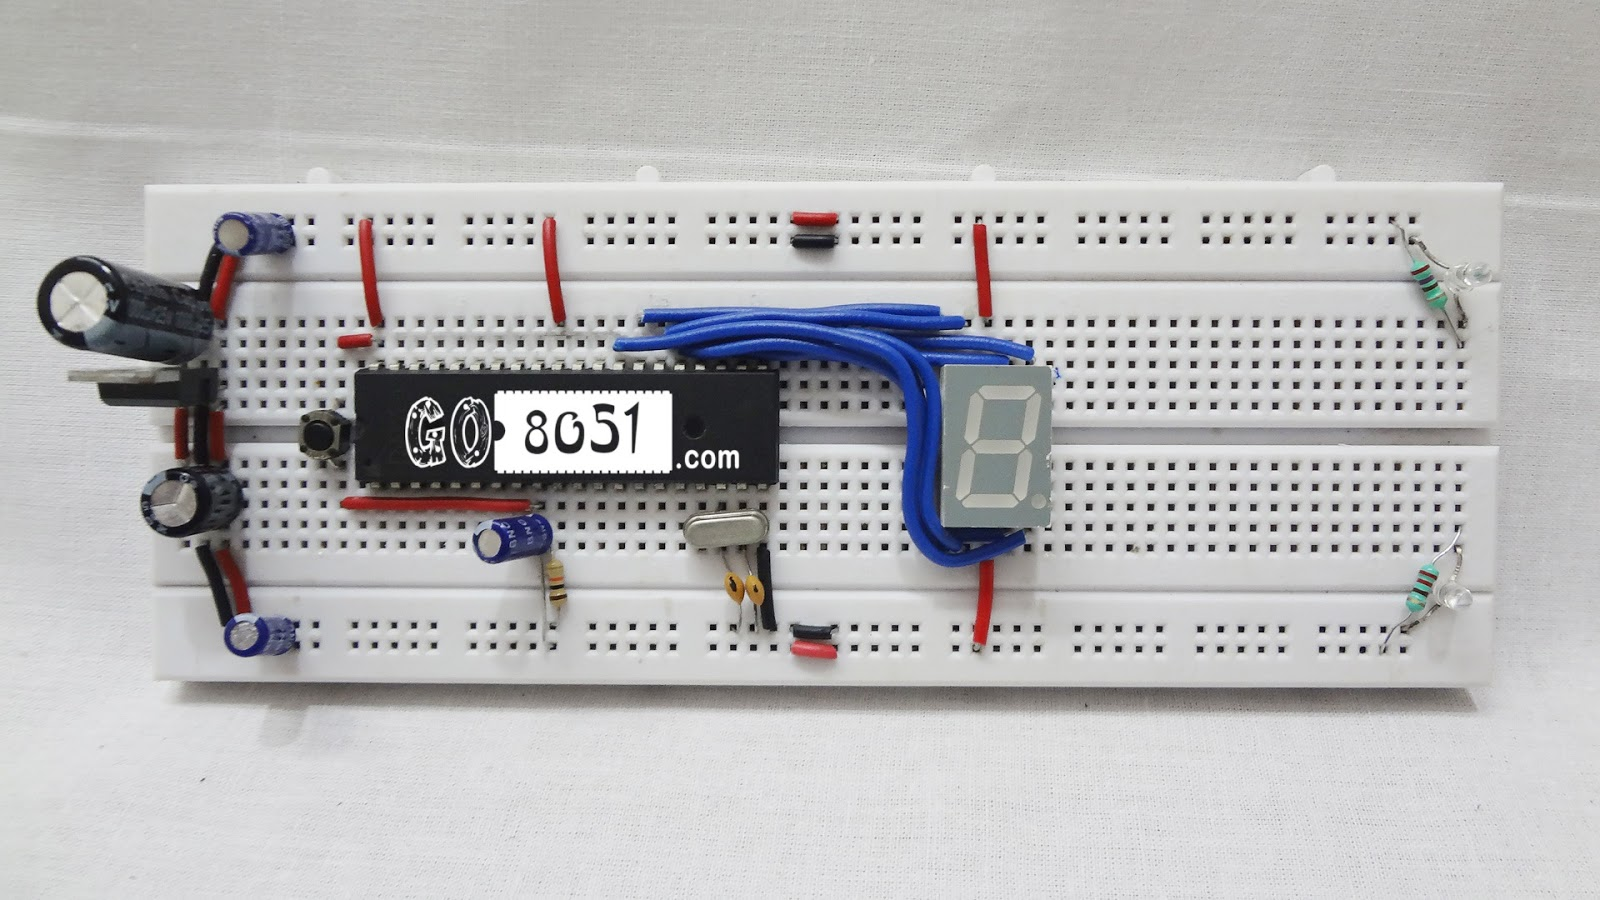 hight resolution of make sure you cross check the connection from the circuit diagram and below given bread board connection